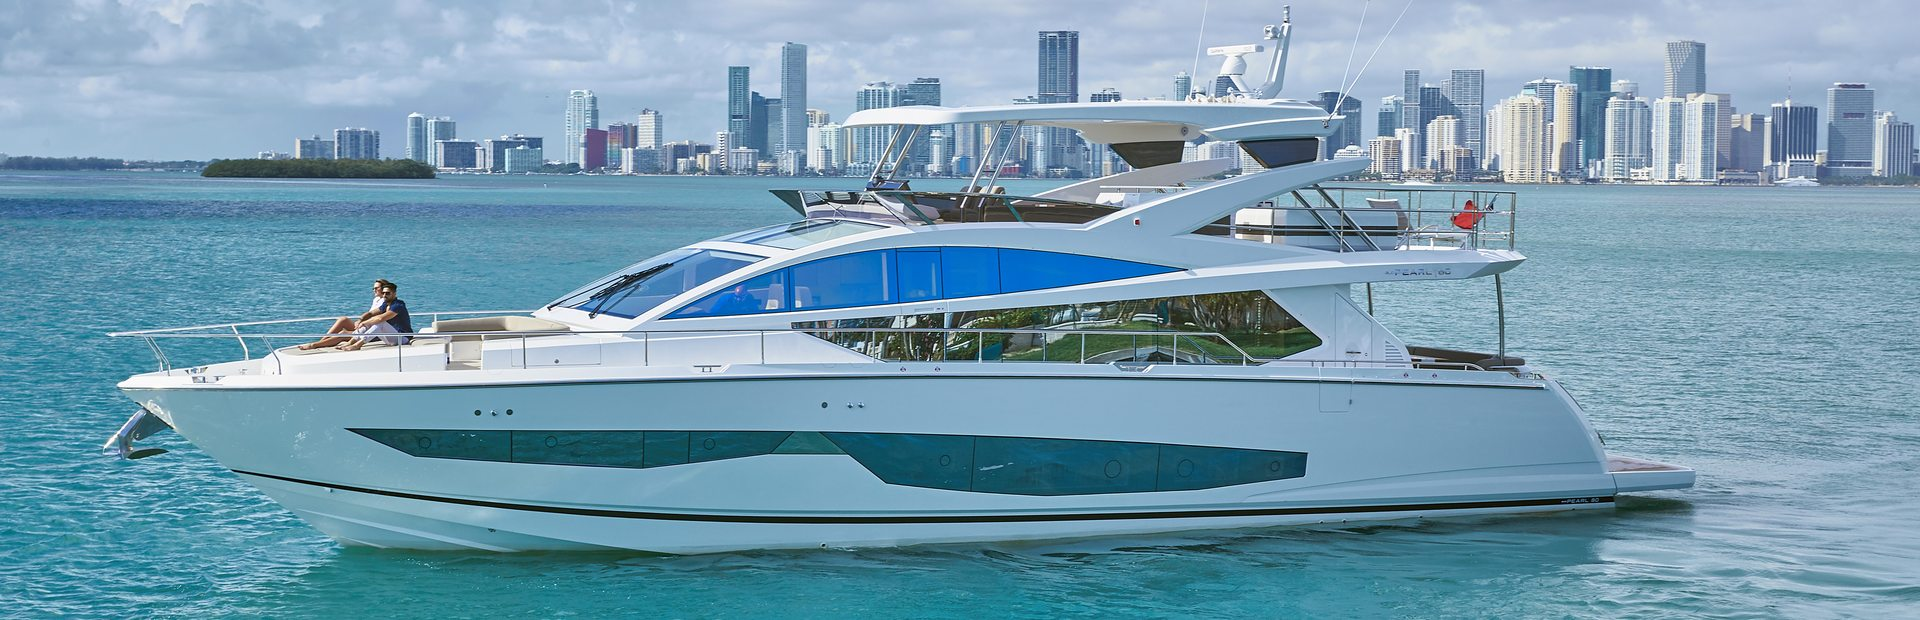 Pearl 80 Yacht Charter